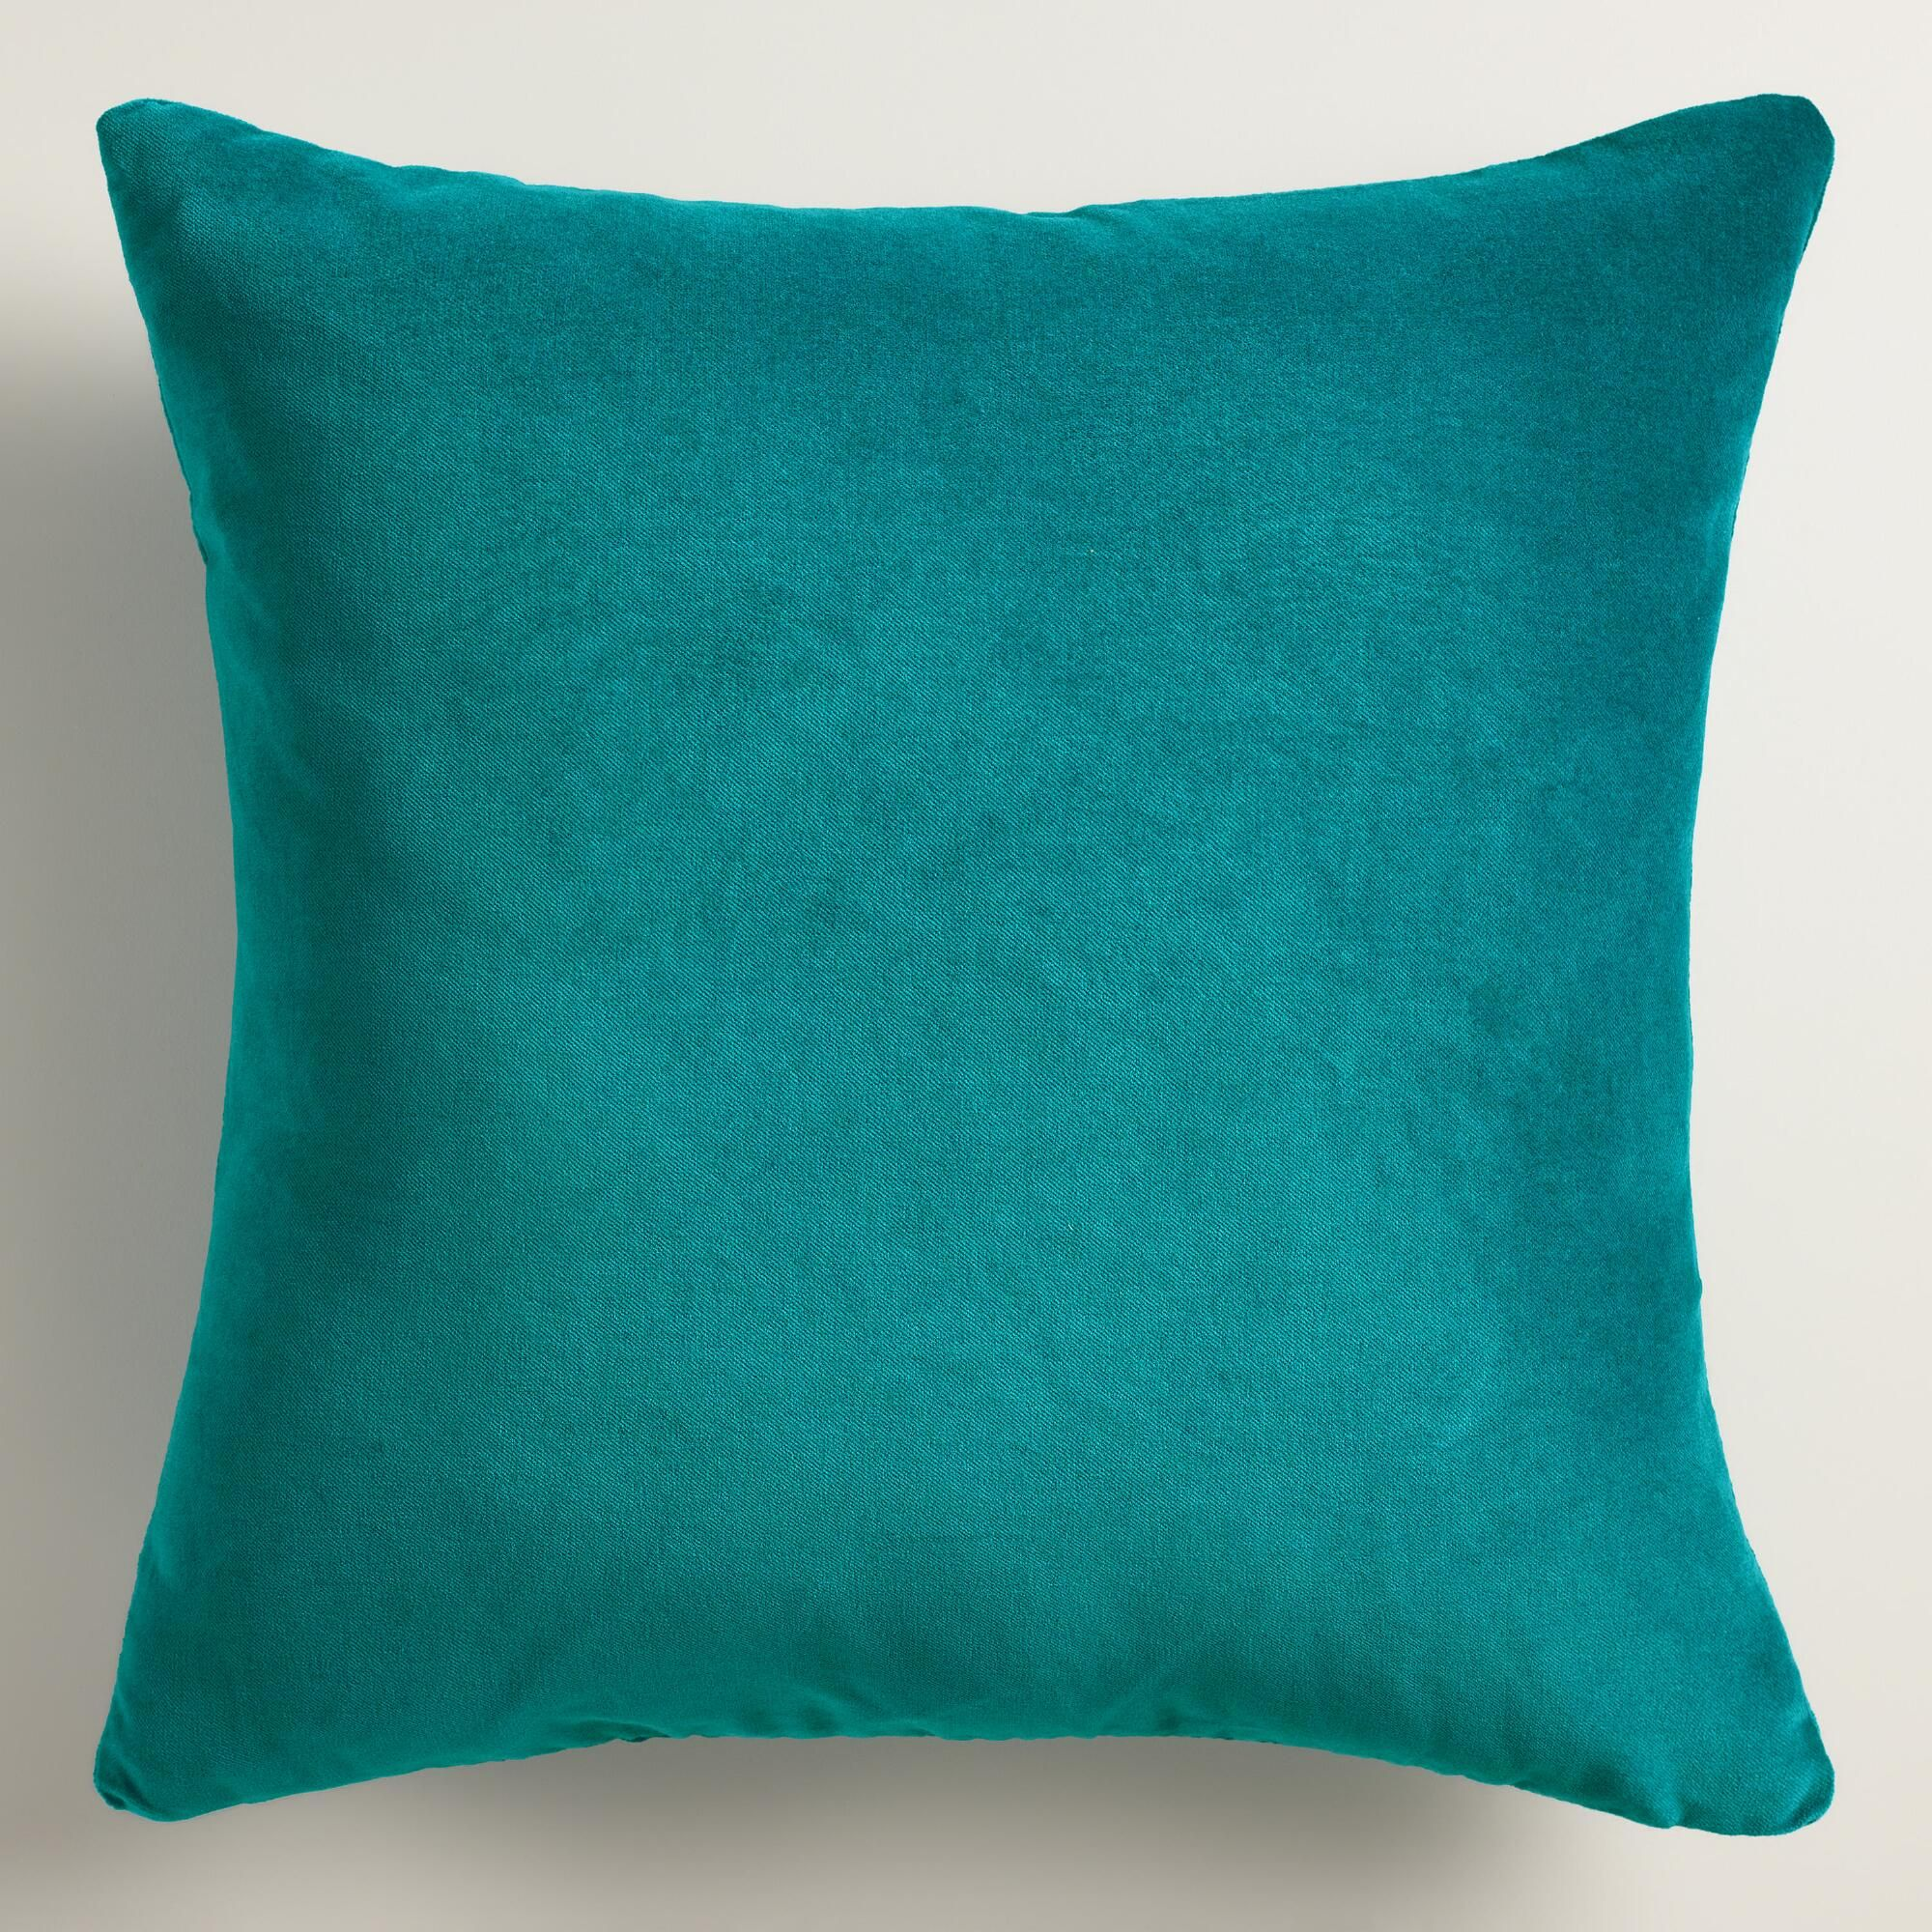 amazon accent dp case com teal kitchen cushion blue throw pillow decorative cover linen pillows floral cotton home